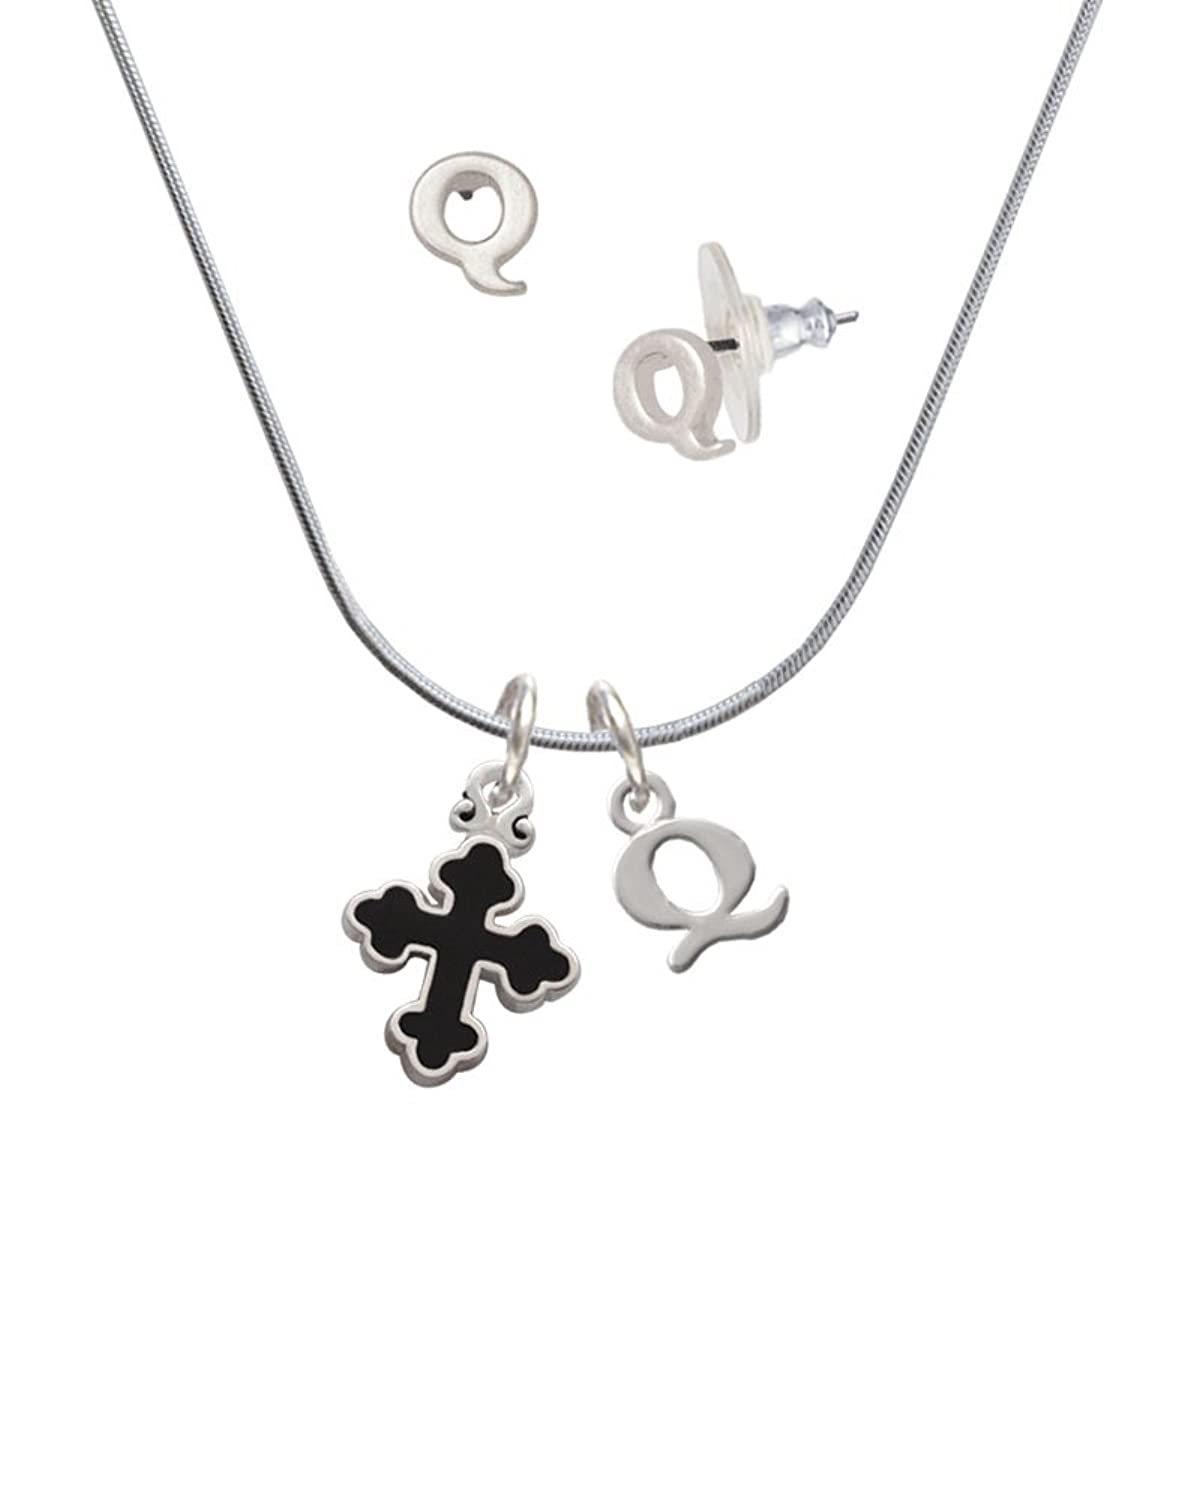 Small Black Enamel Botonee Cross - Q Initial Charm Necklace and Stud Earrings Jewelry Set